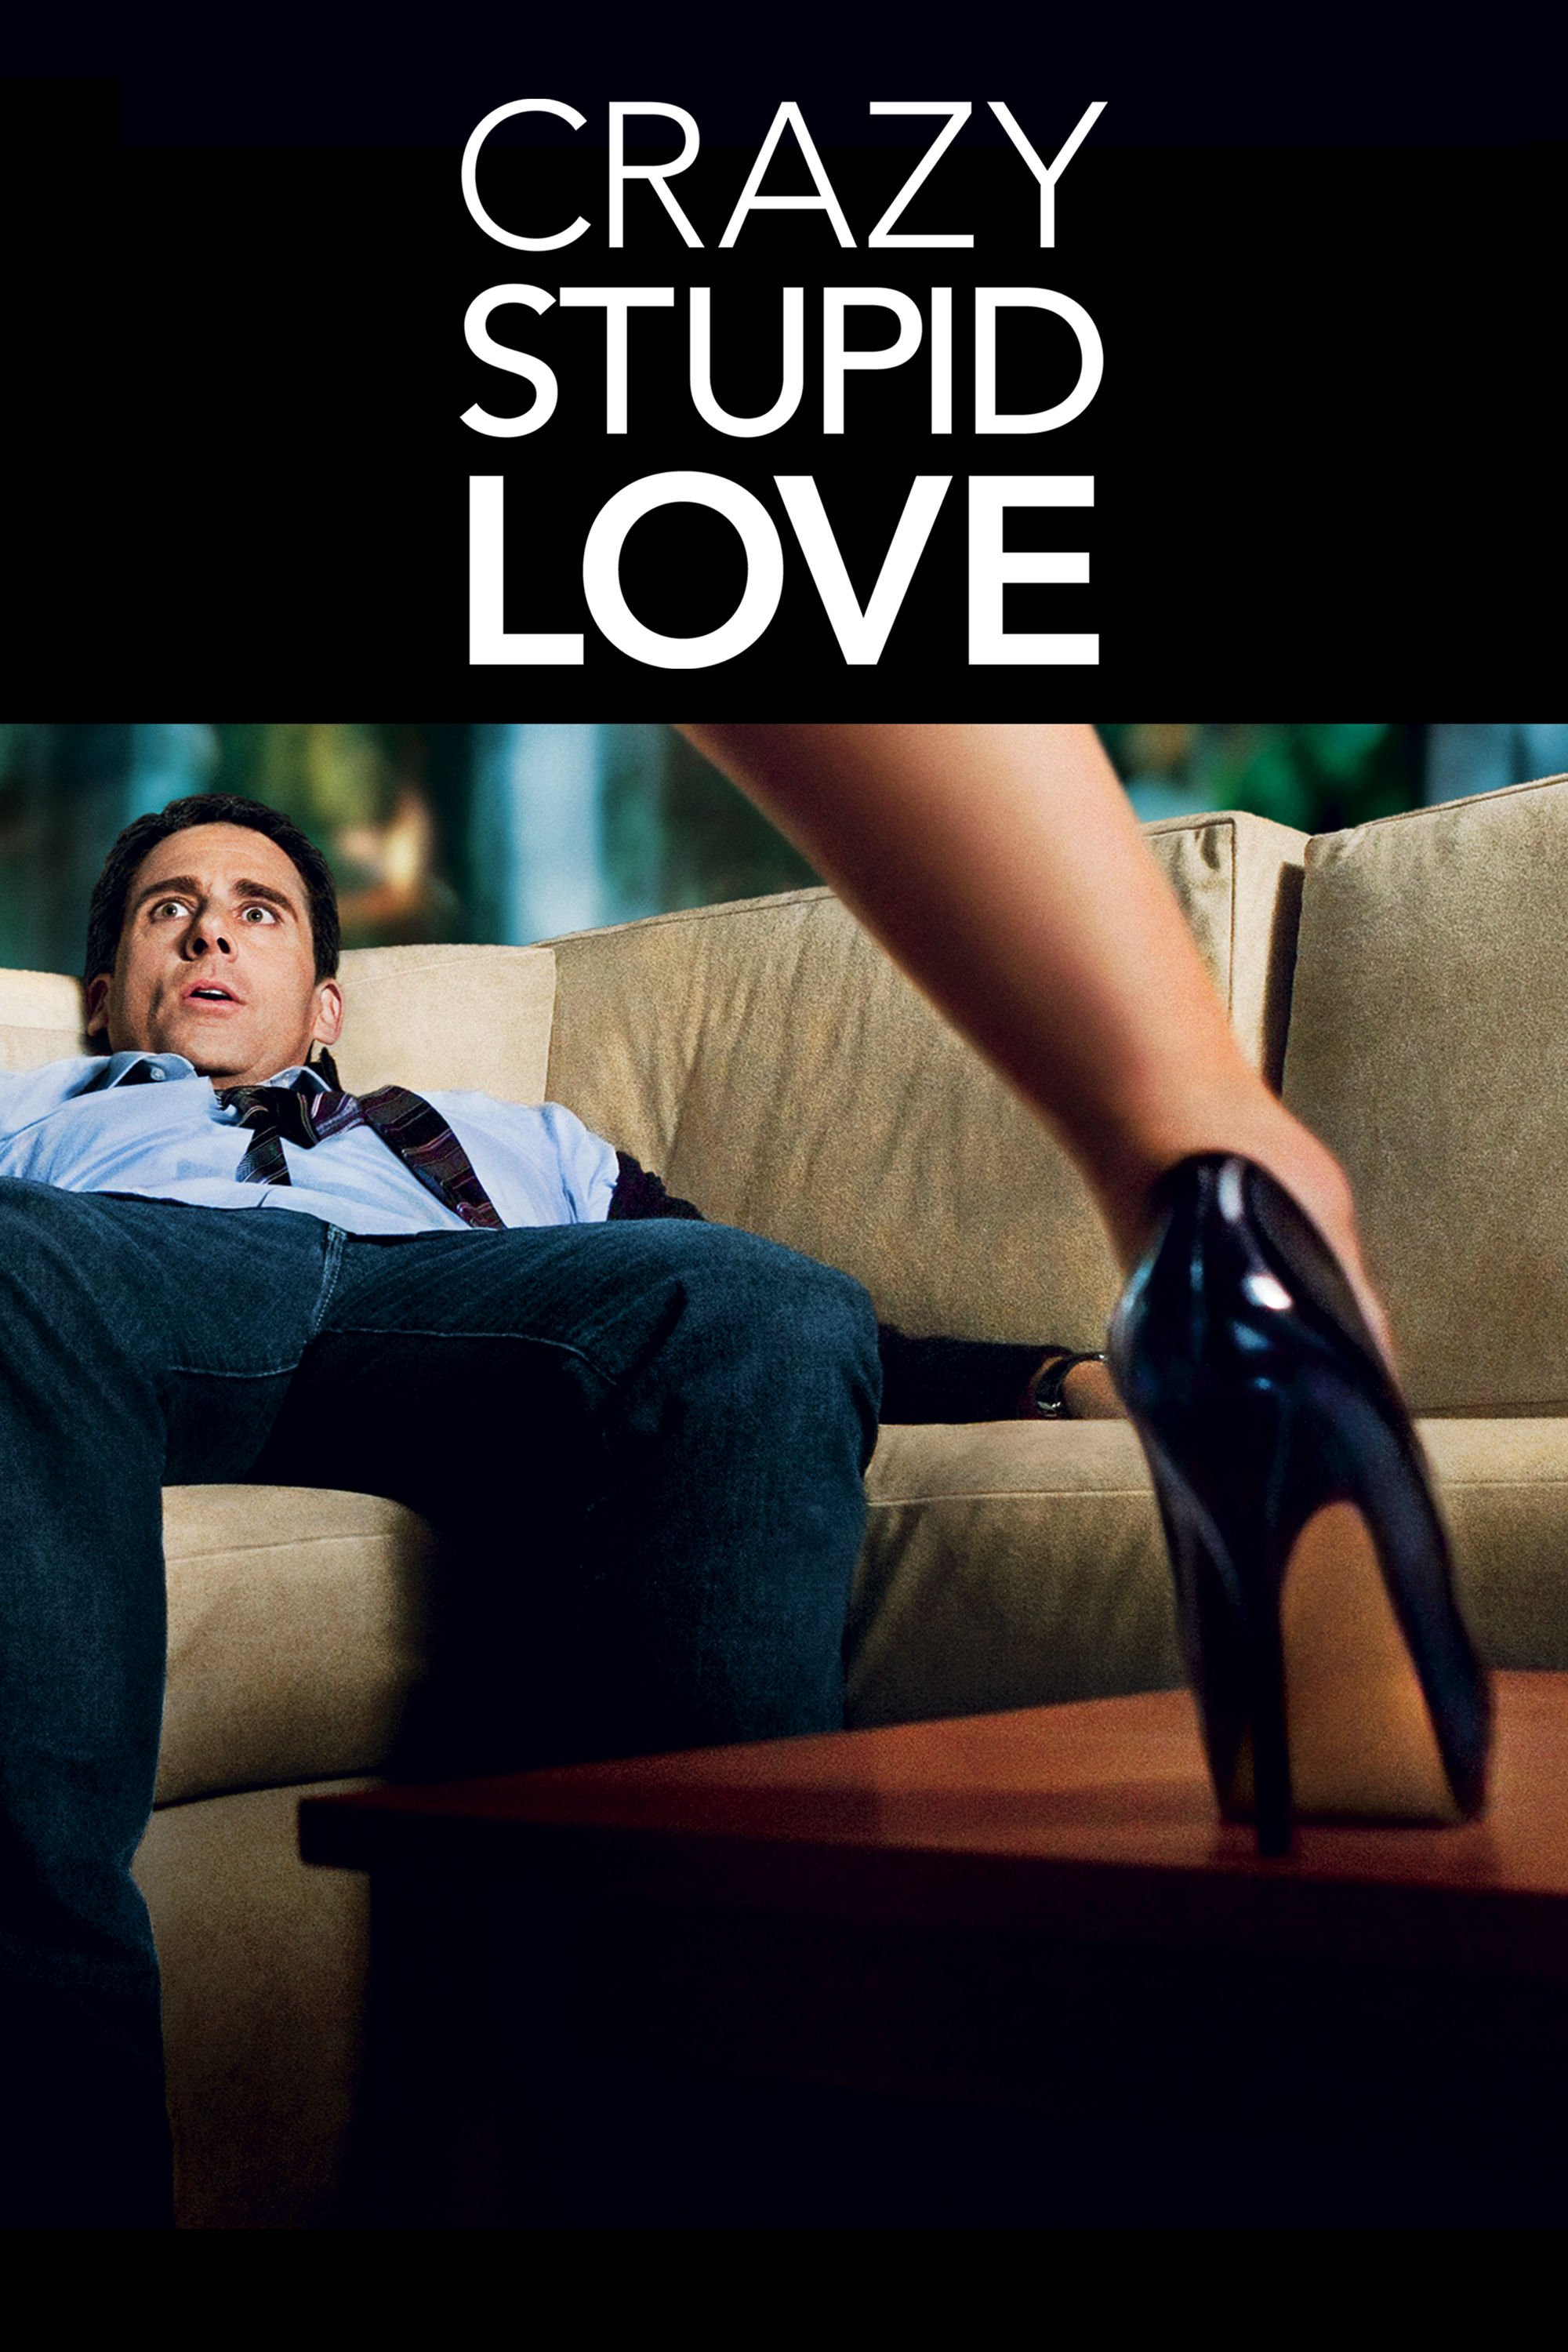 crazy-stupid-love-filming-locations-poster